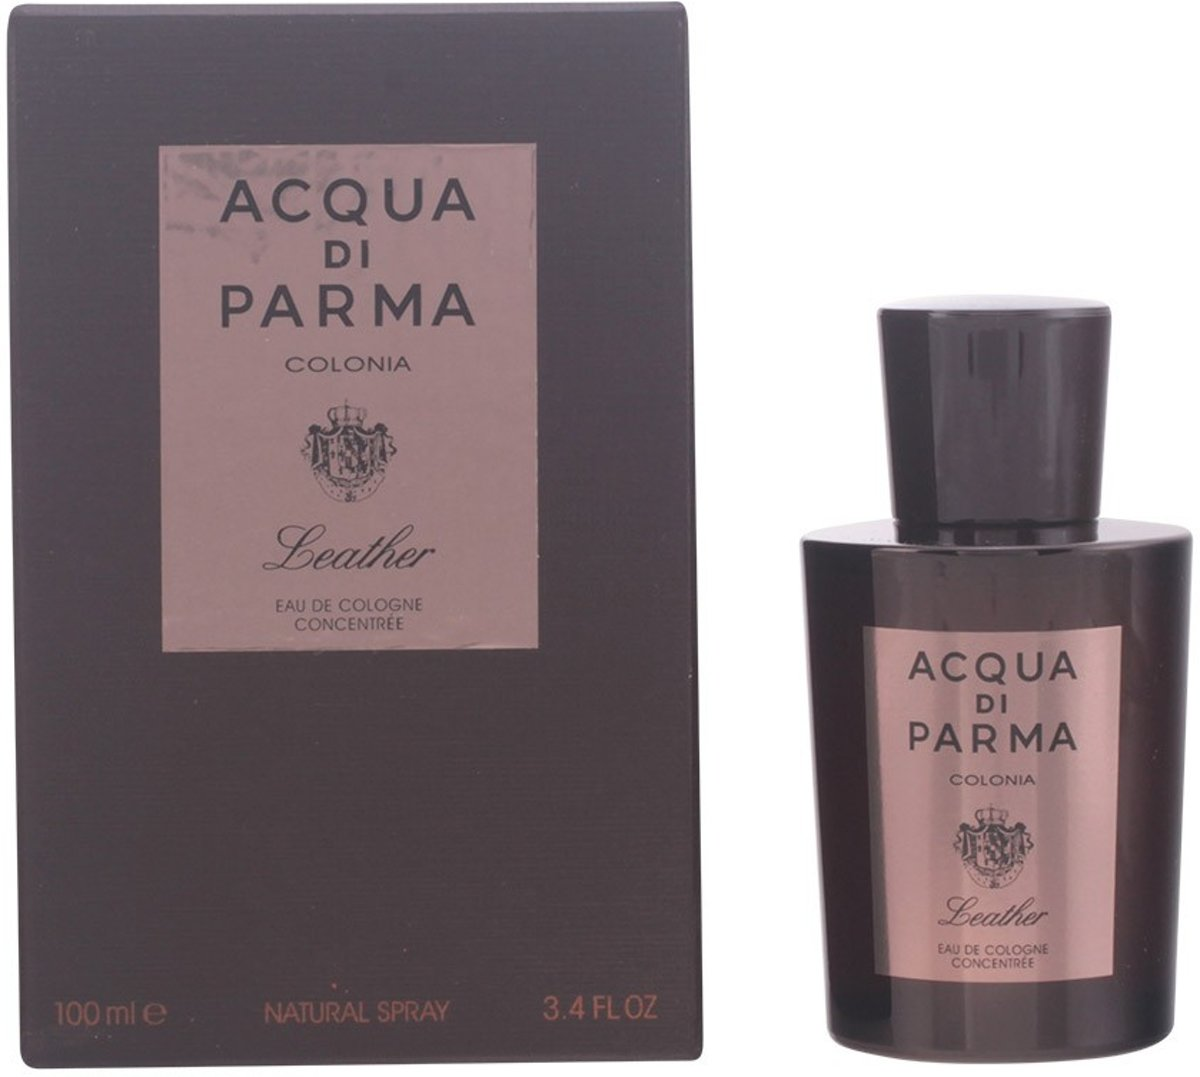 MULTI BUNDEL 2 stuks - Acqua Di Parma - LEATHER - eau de cologne - concentree spray 100 ml